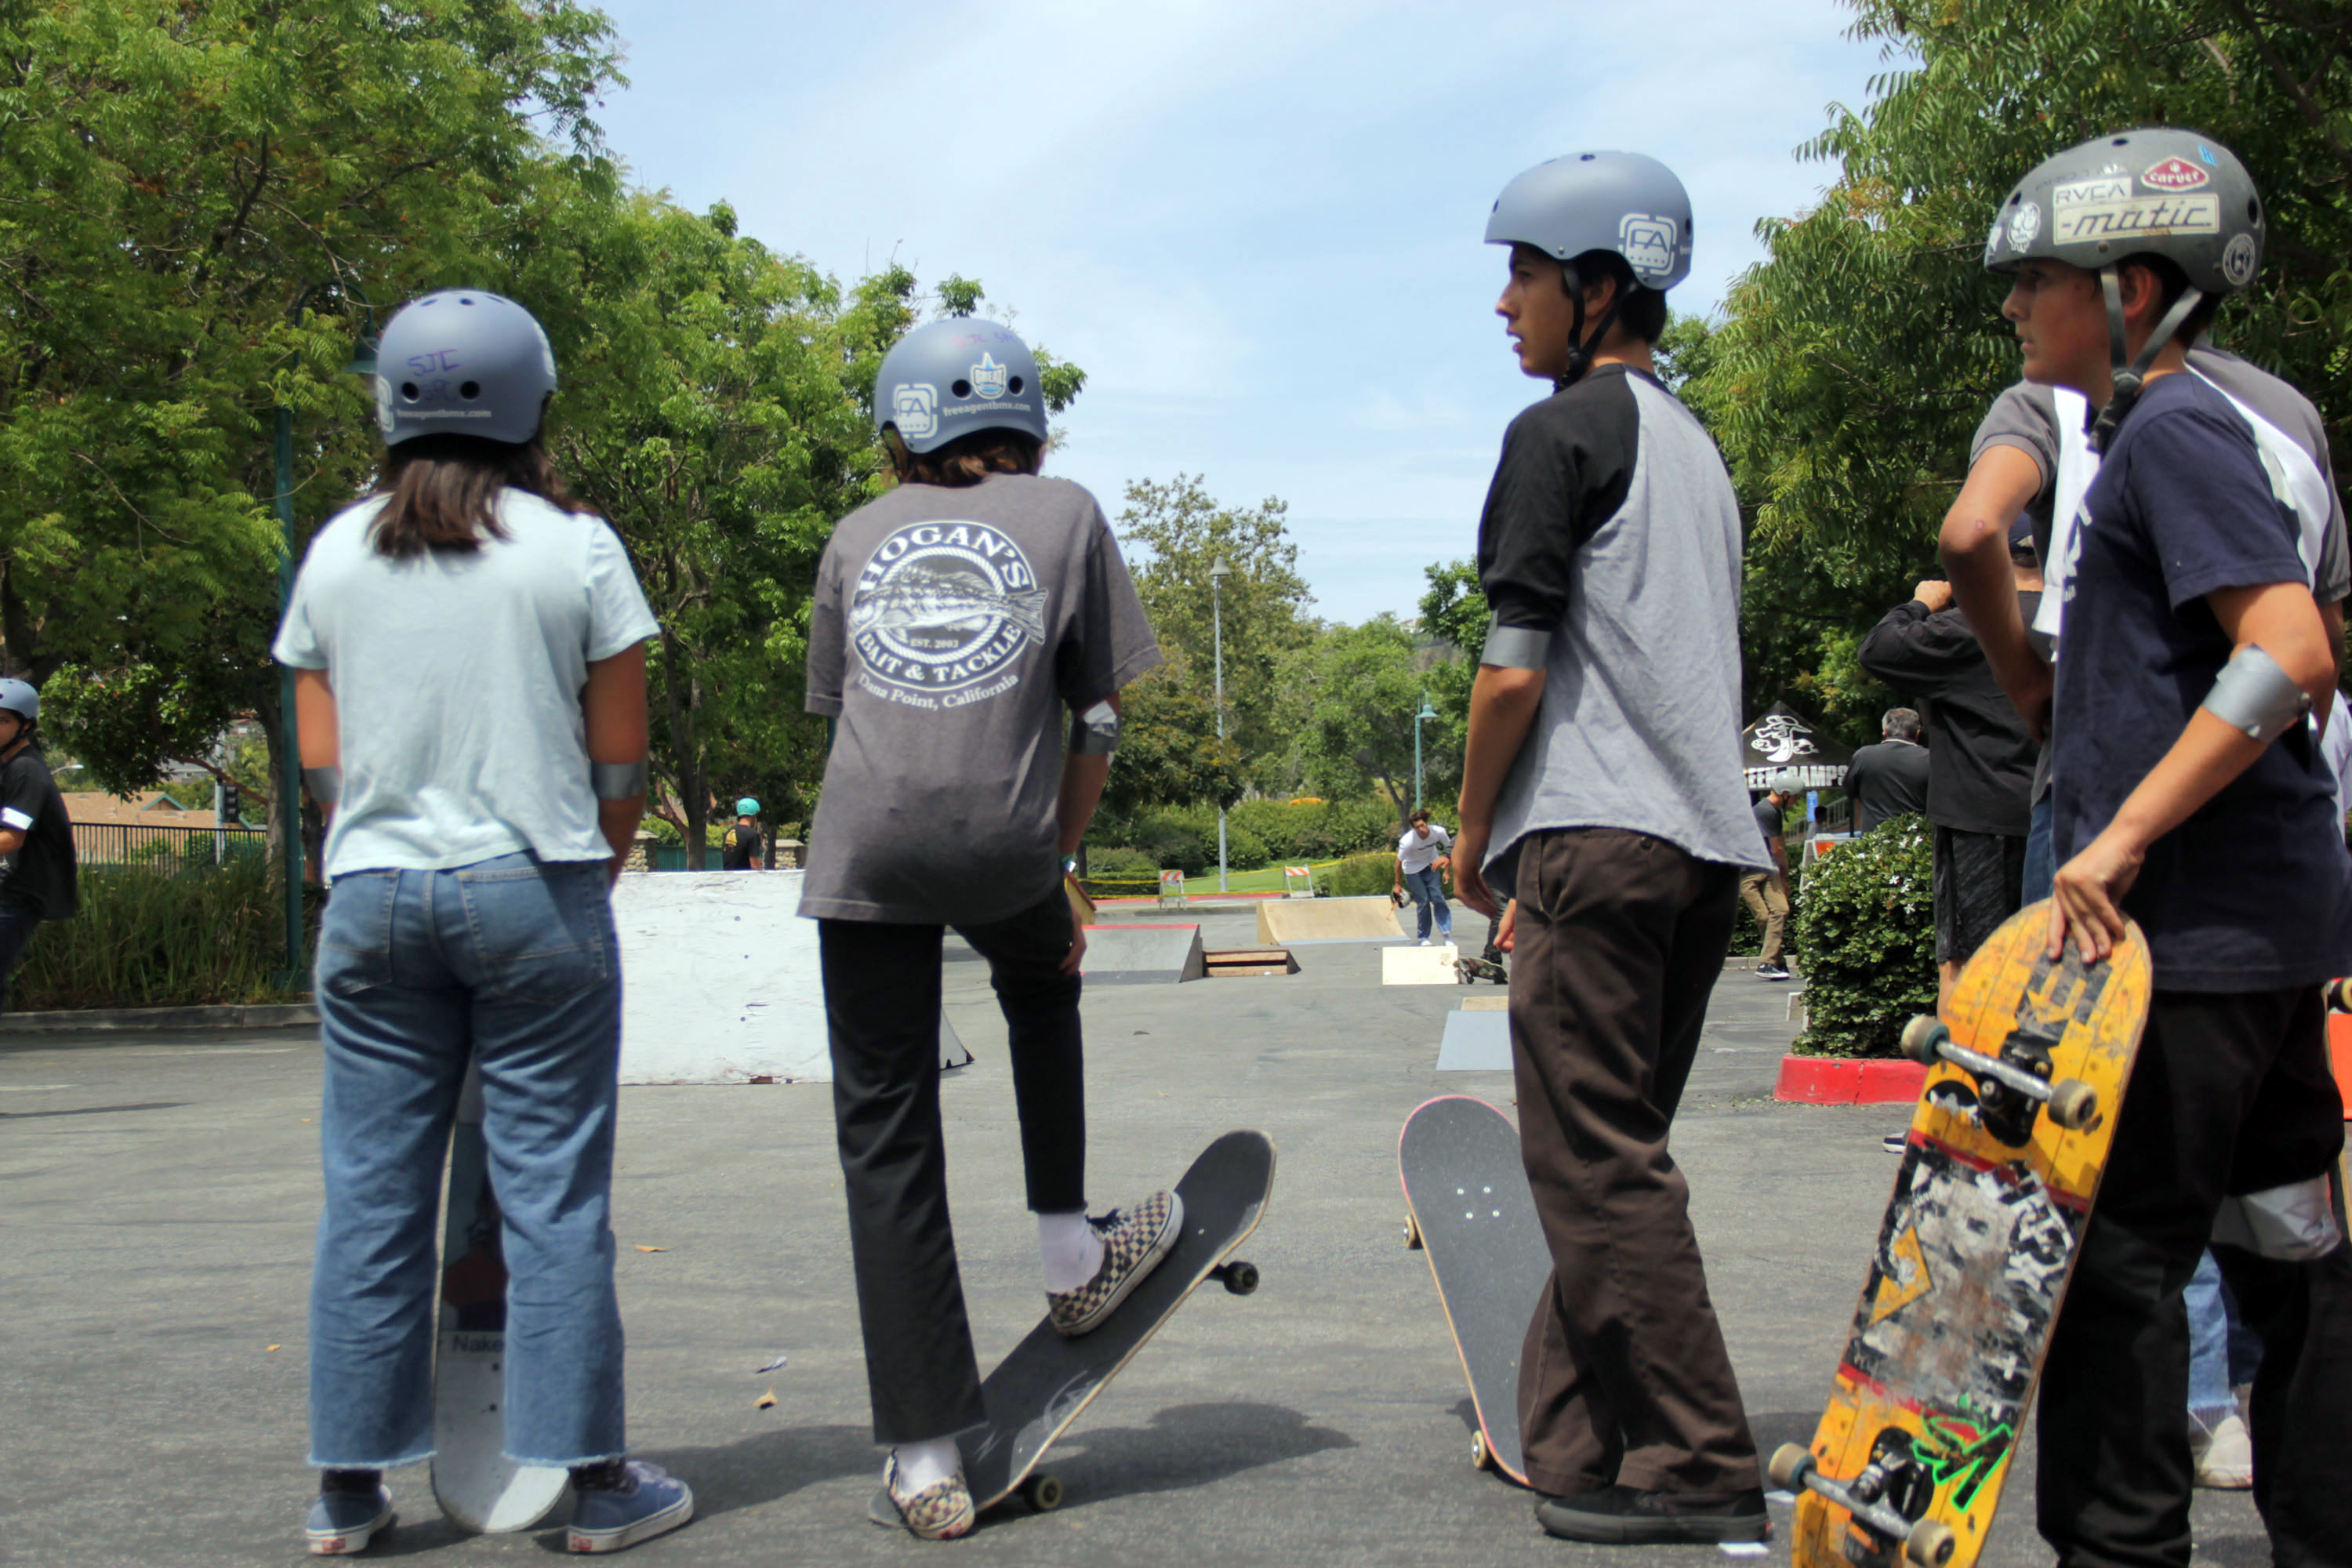 Dozens of skateboarders throughout South County participate in the Spring 2019 Skate Jam at the San Juan Capistrano Community Center on Saturday, May 18. Photo: Shawn Raymundo